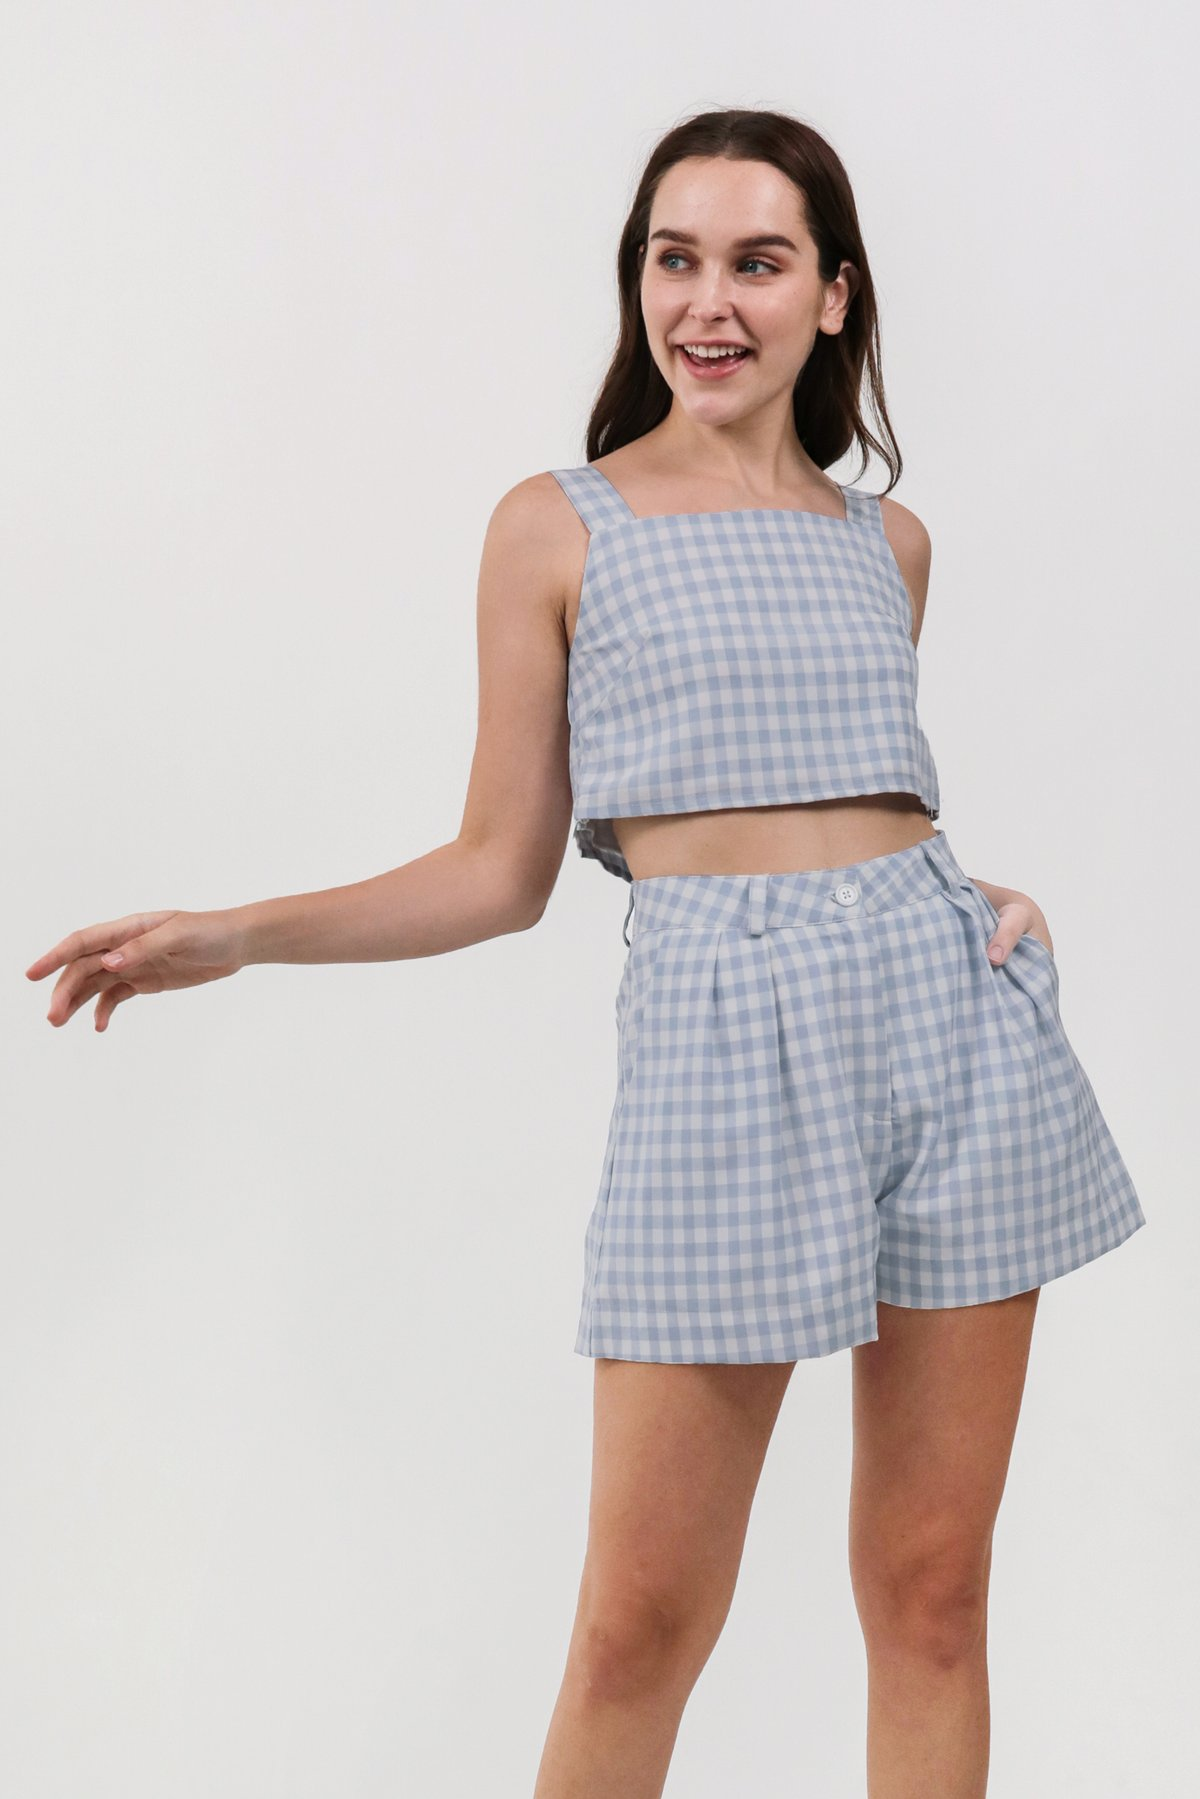 Philly Cropped Top (Blue Gingham)